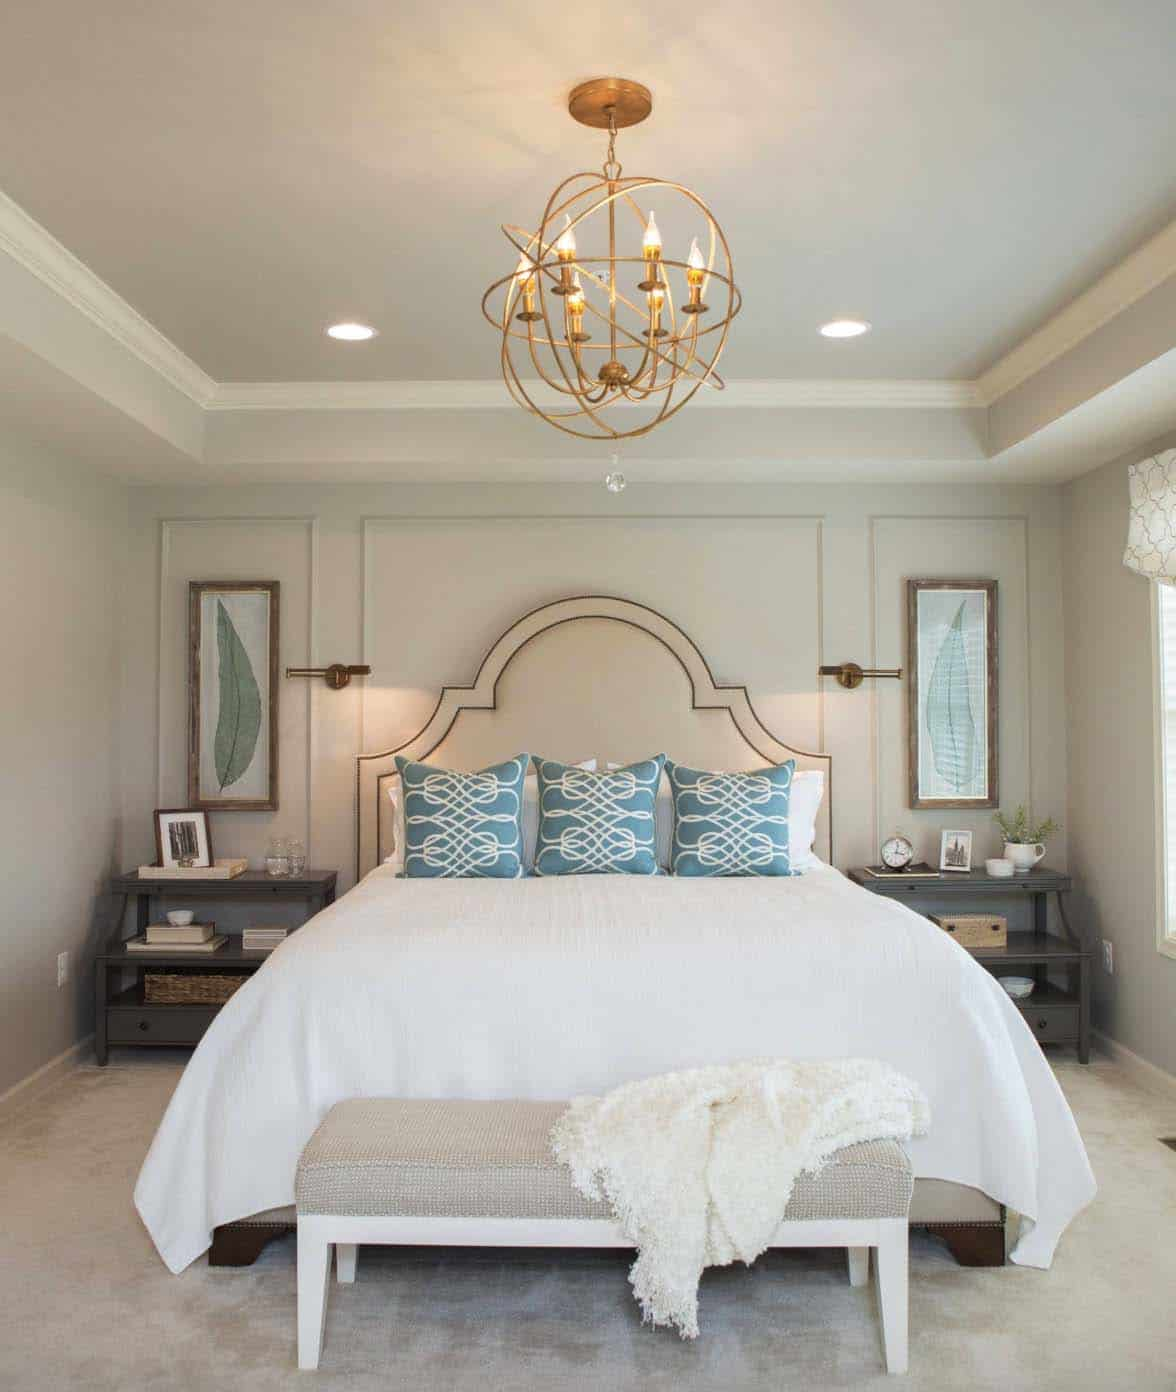 20+ Serene And Elegant Master Bedroom Decorating Ideas